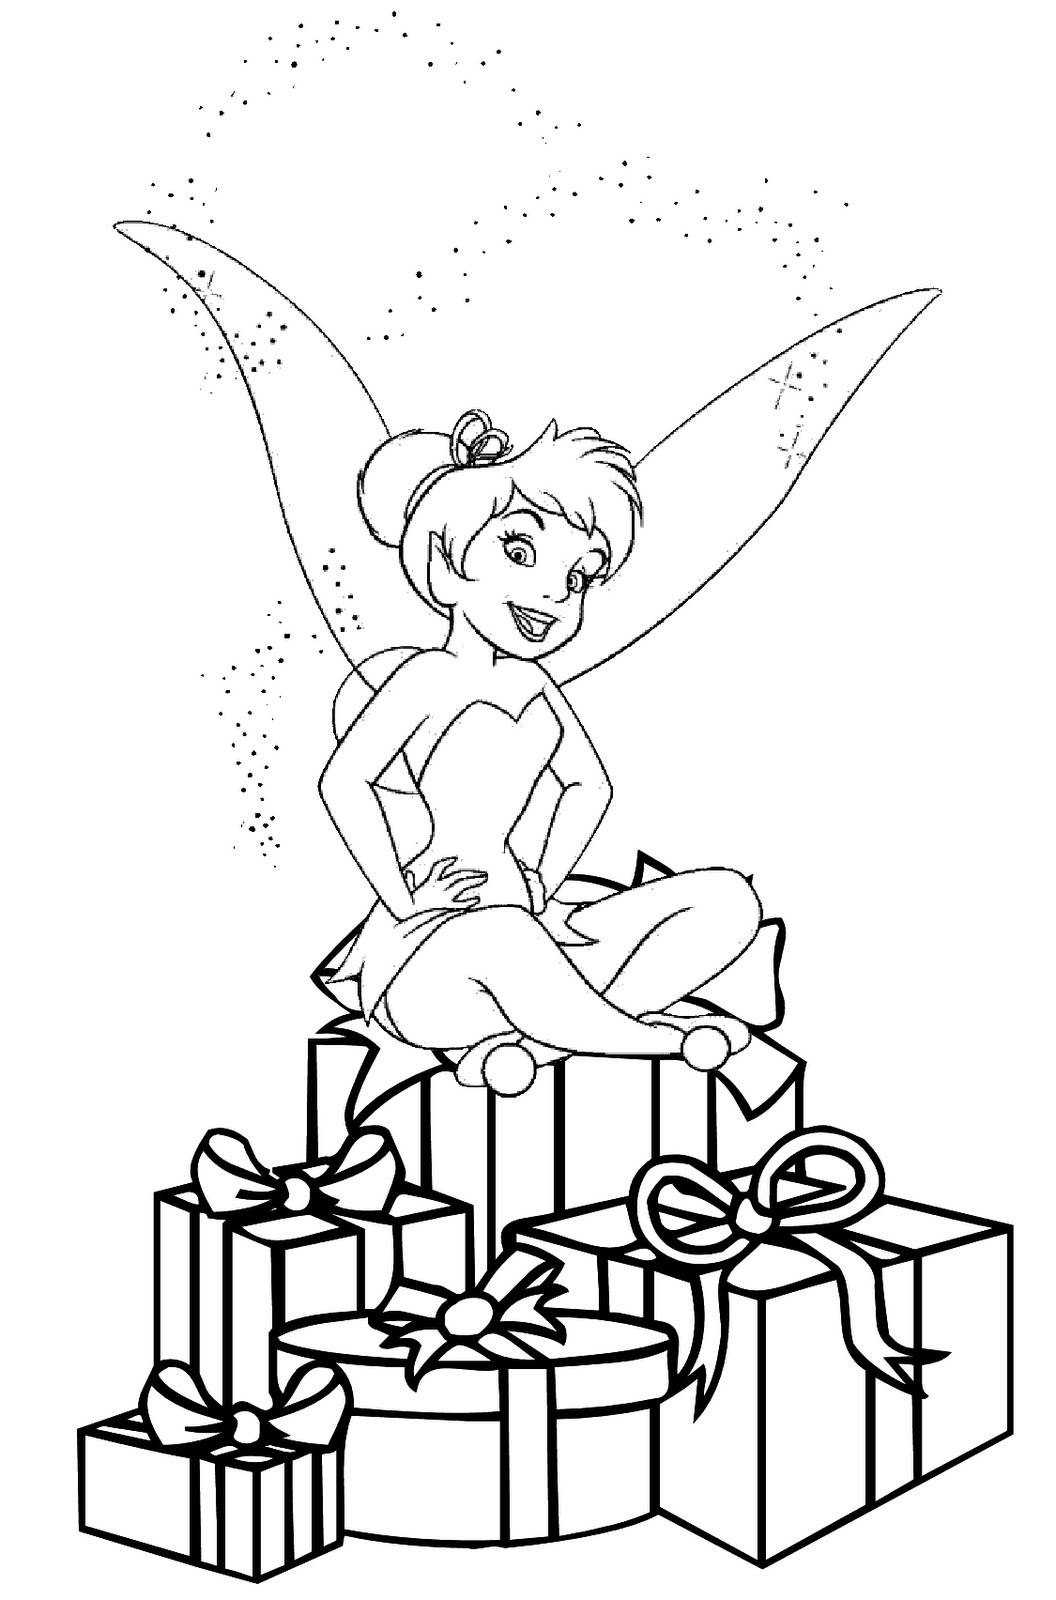 tinkerbell coloring pages kids - photo#36